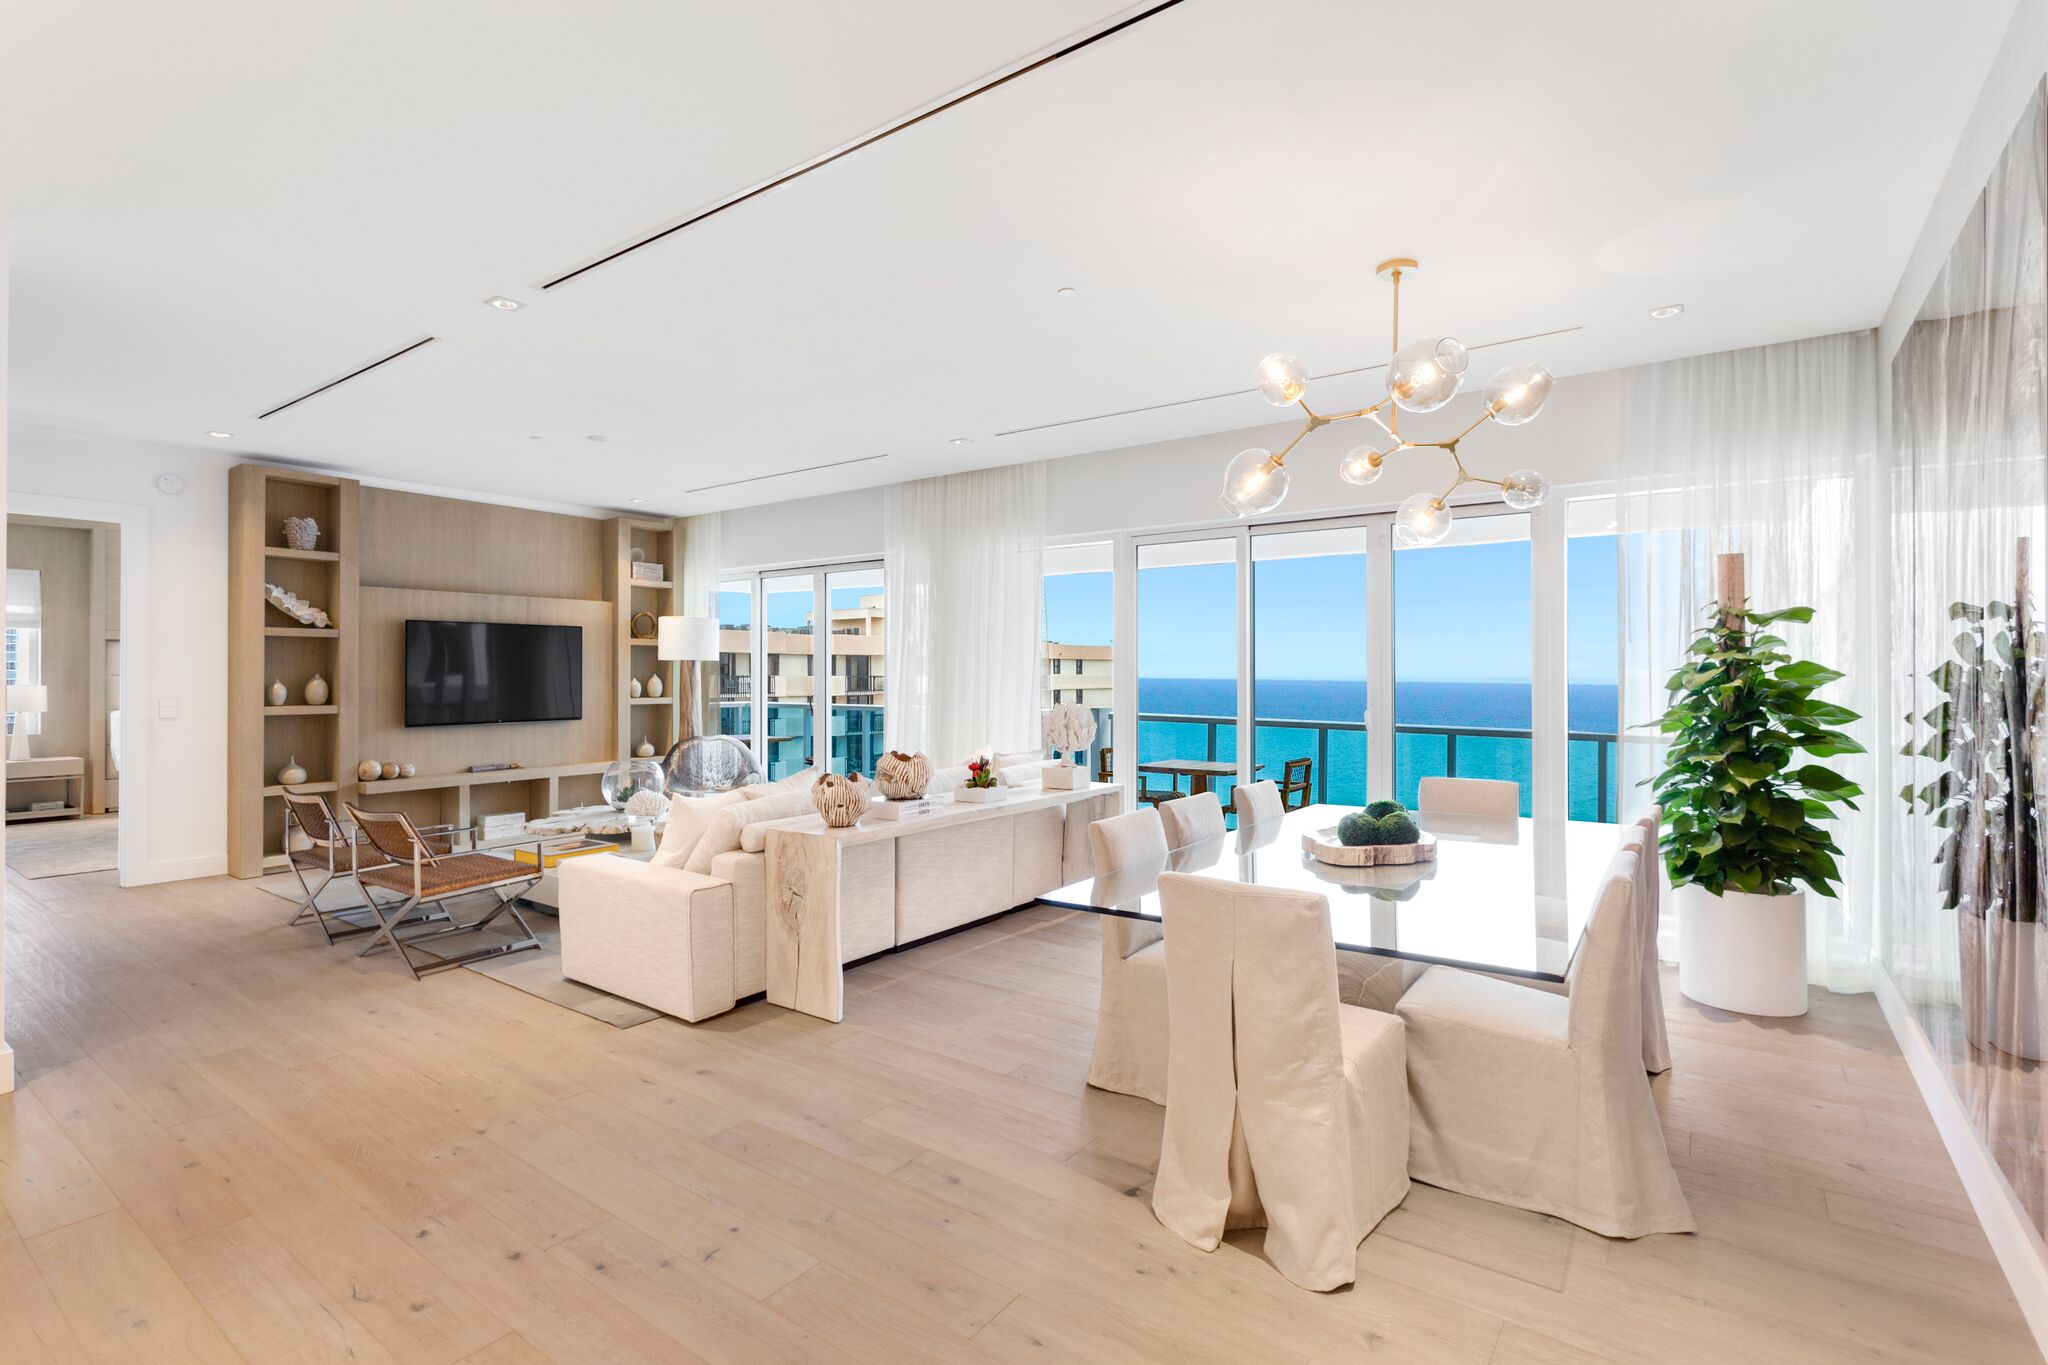 Featured Listing: Tour the Newly Unveiled Penthouse 1612 of 1 Hotel & Homes Designed by Artefacto